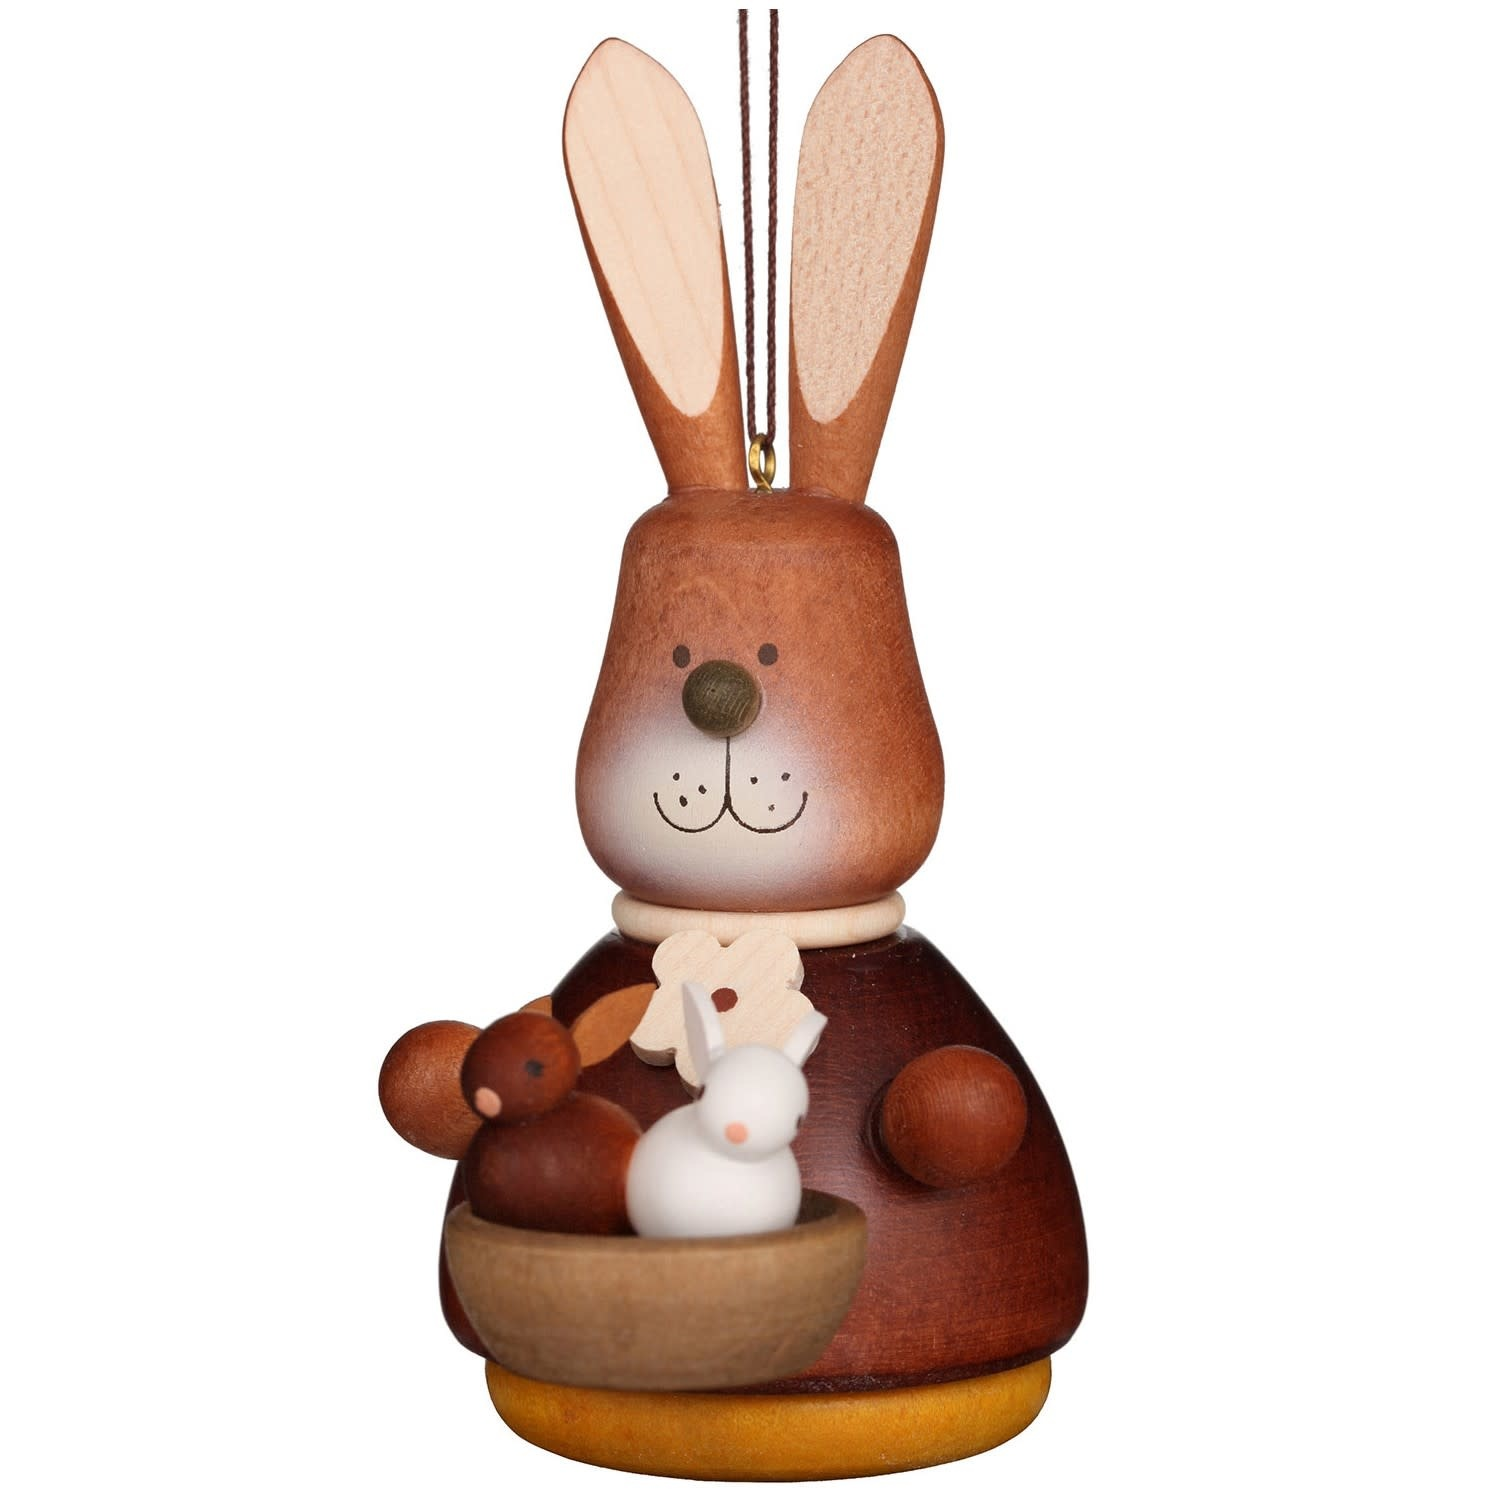 15-0210 Bunny with Baby Ornament (Wobble)